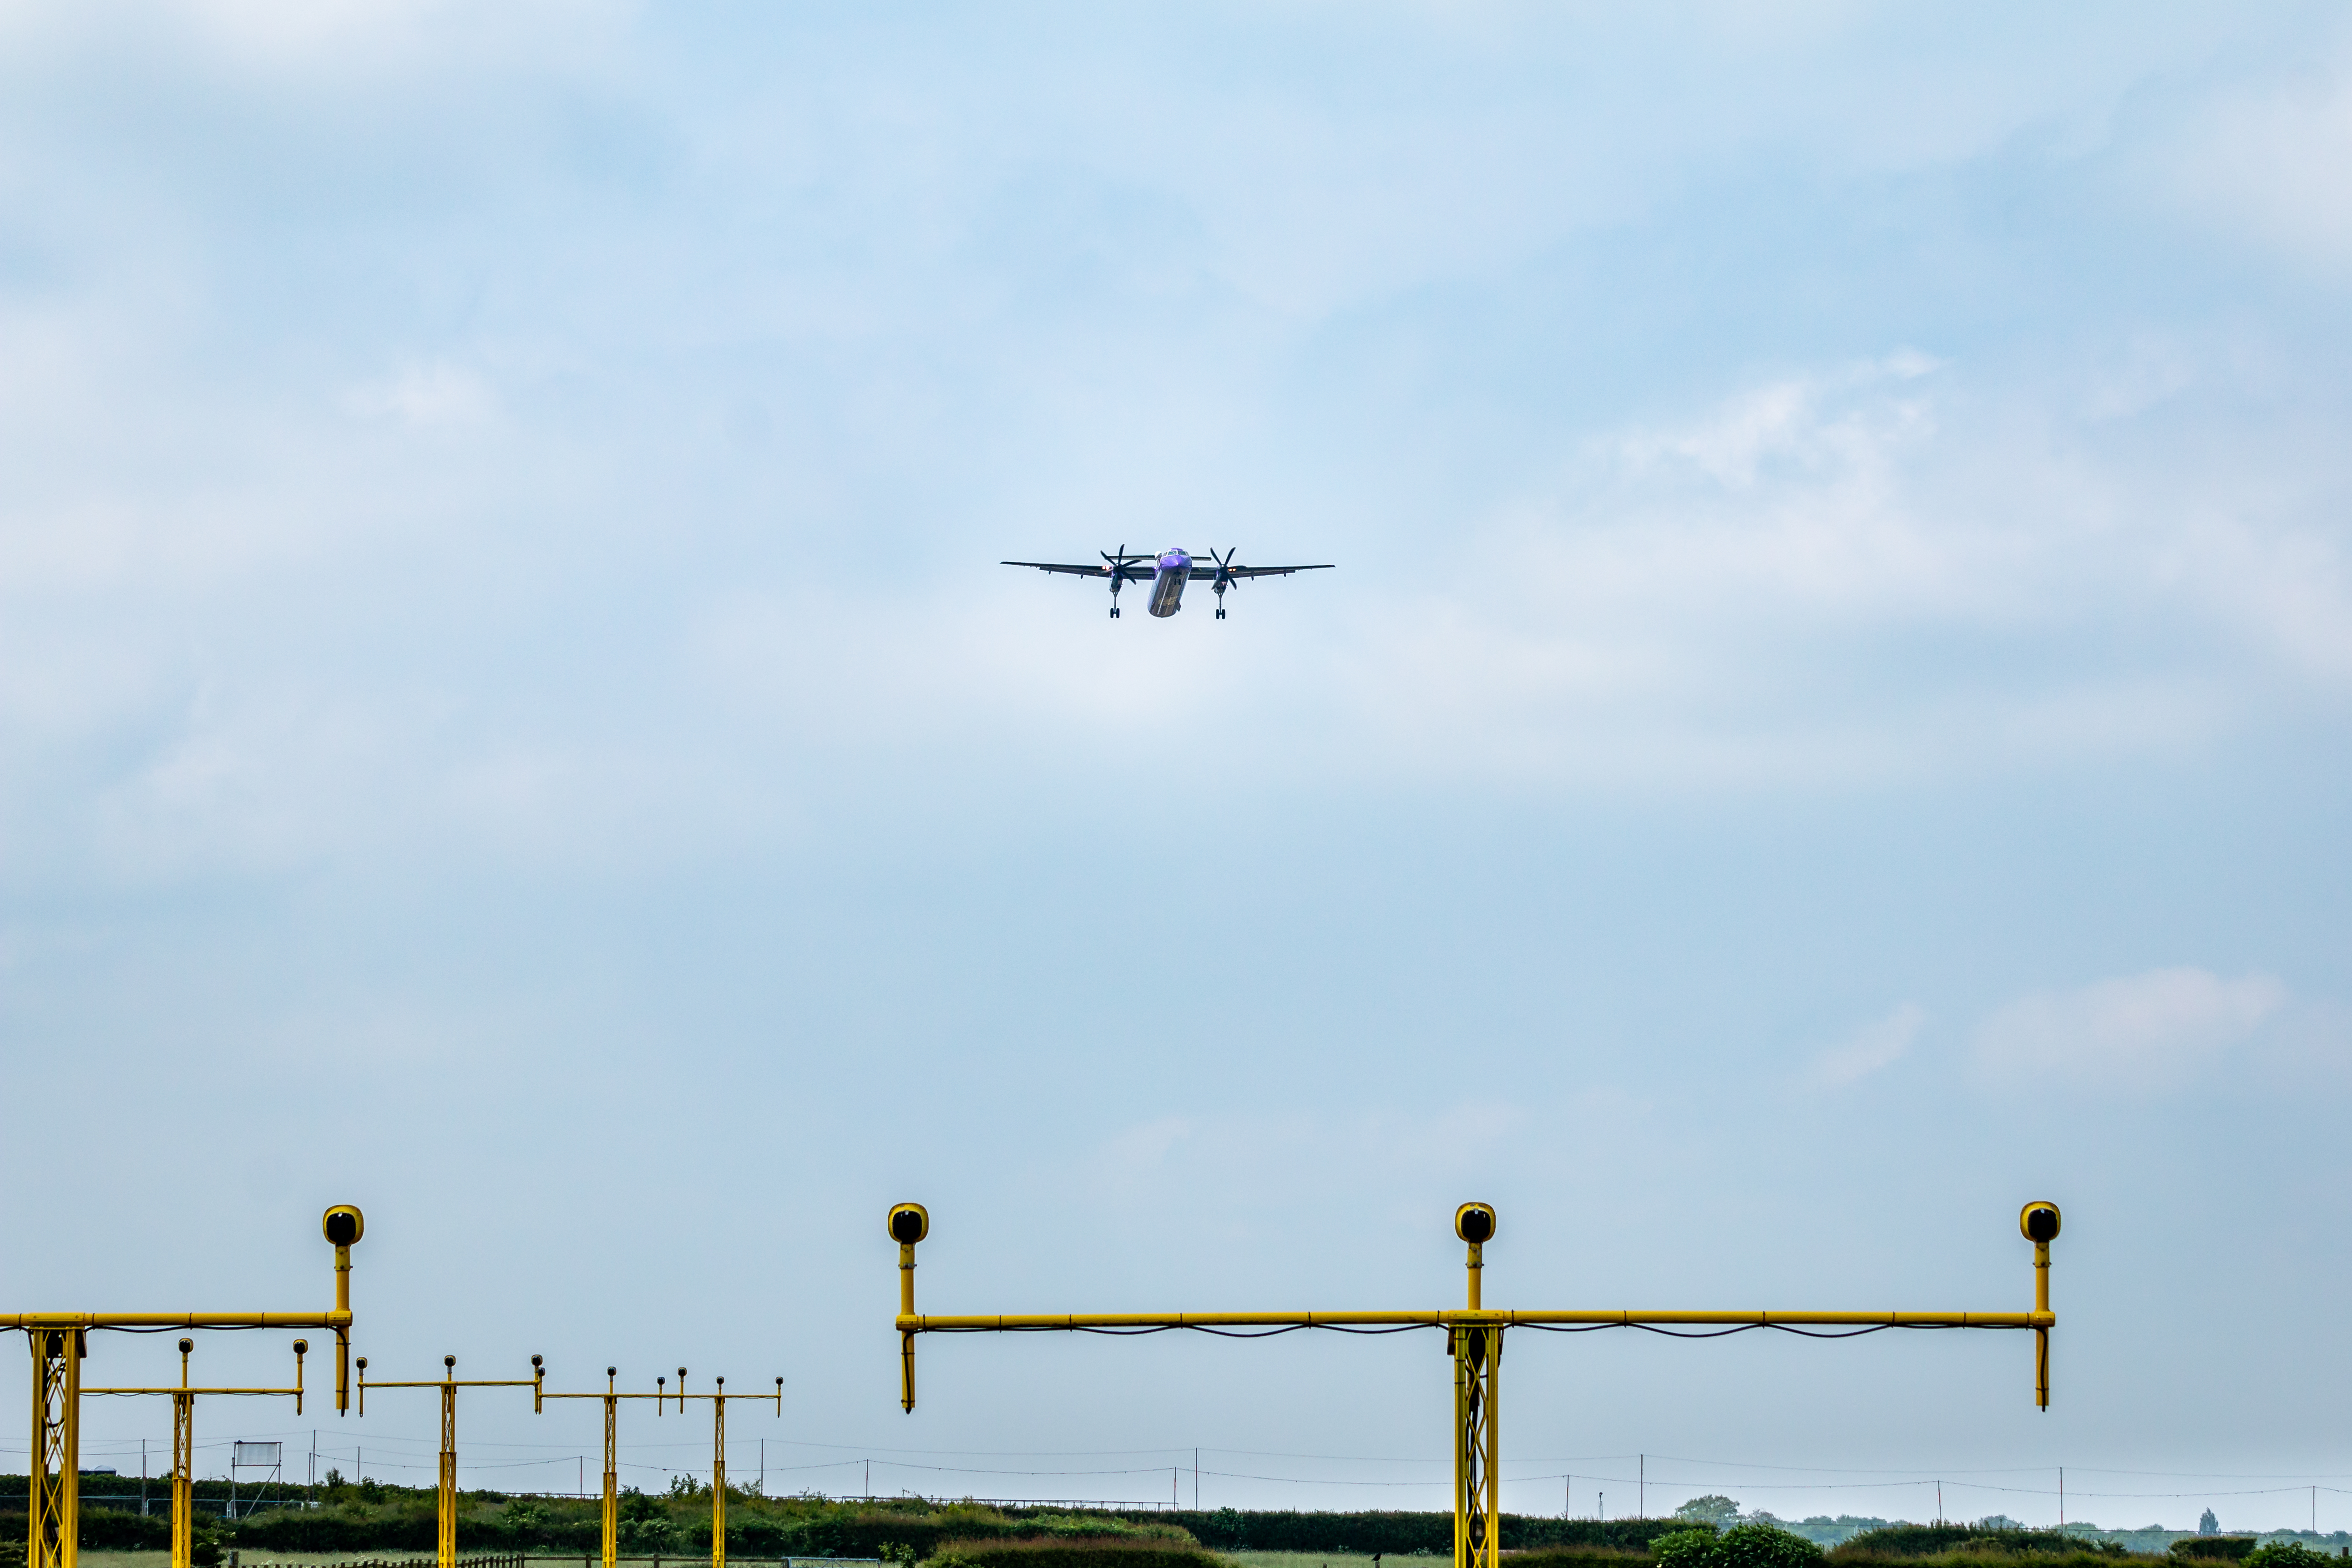 Plane landing at East Midlands Airport